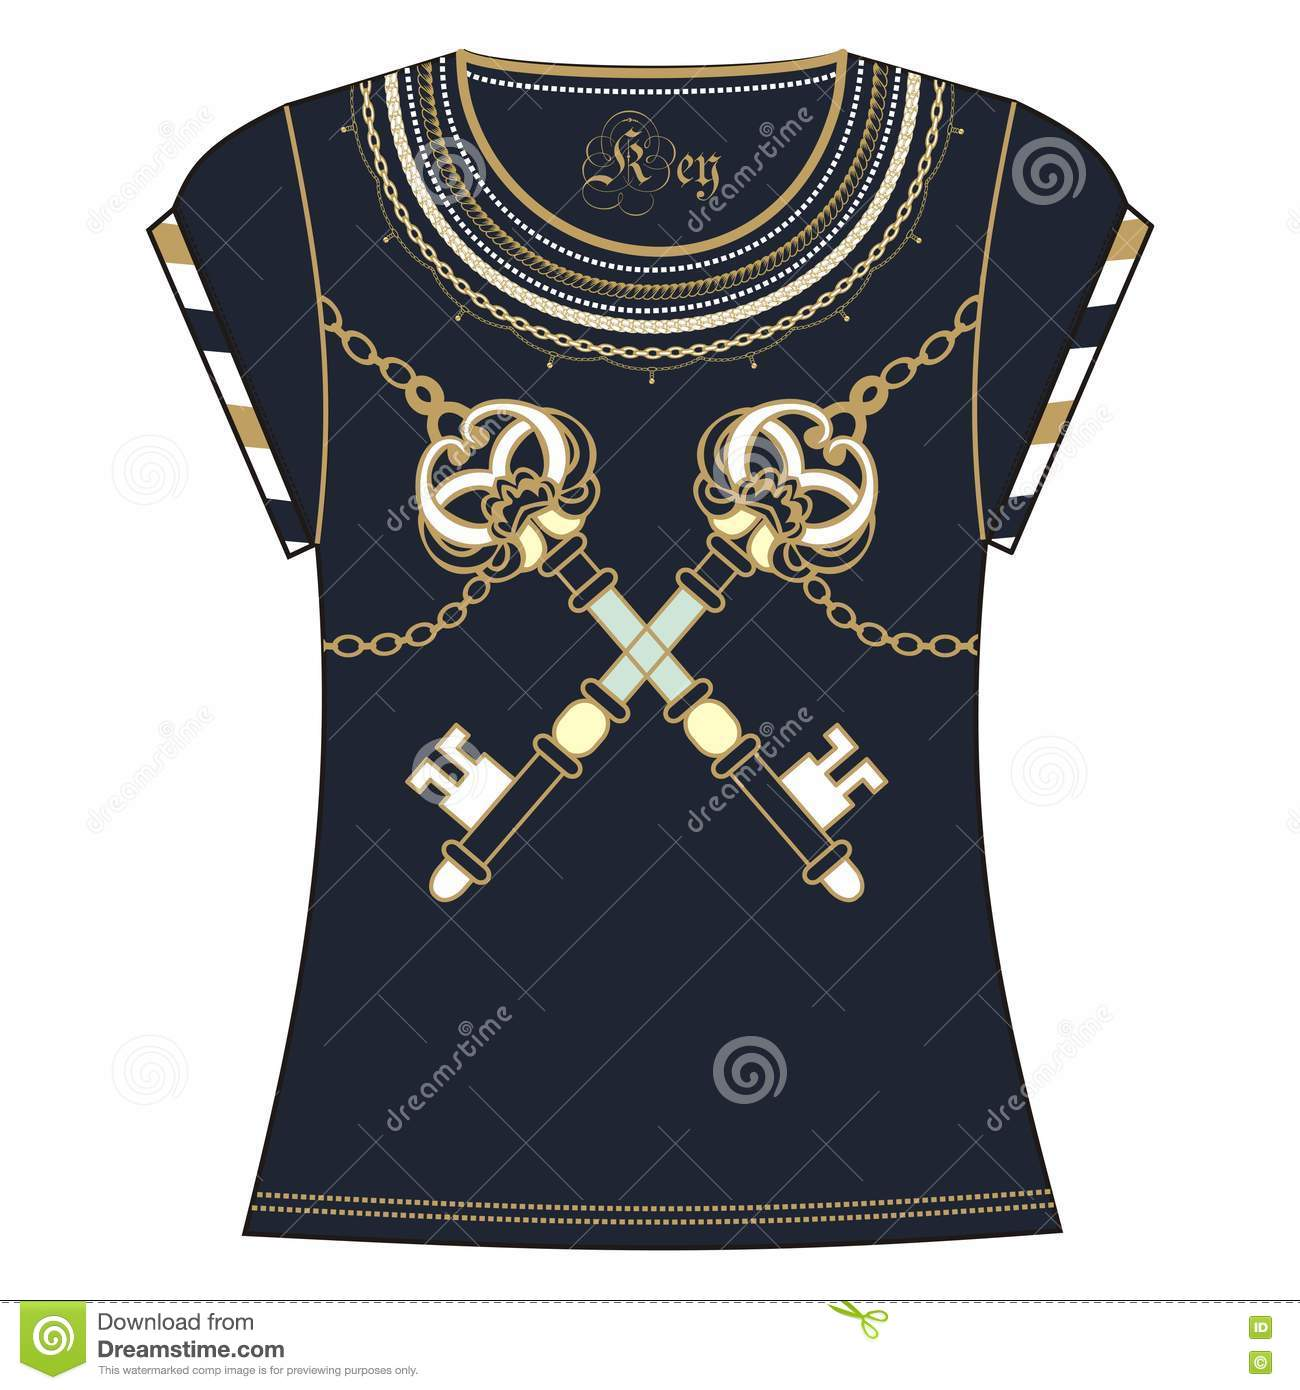 Design t shirt embroidery - Retro Woman T Shirt Print Design Embroidery Of Heraldic Key And Chain Gold Blue Color